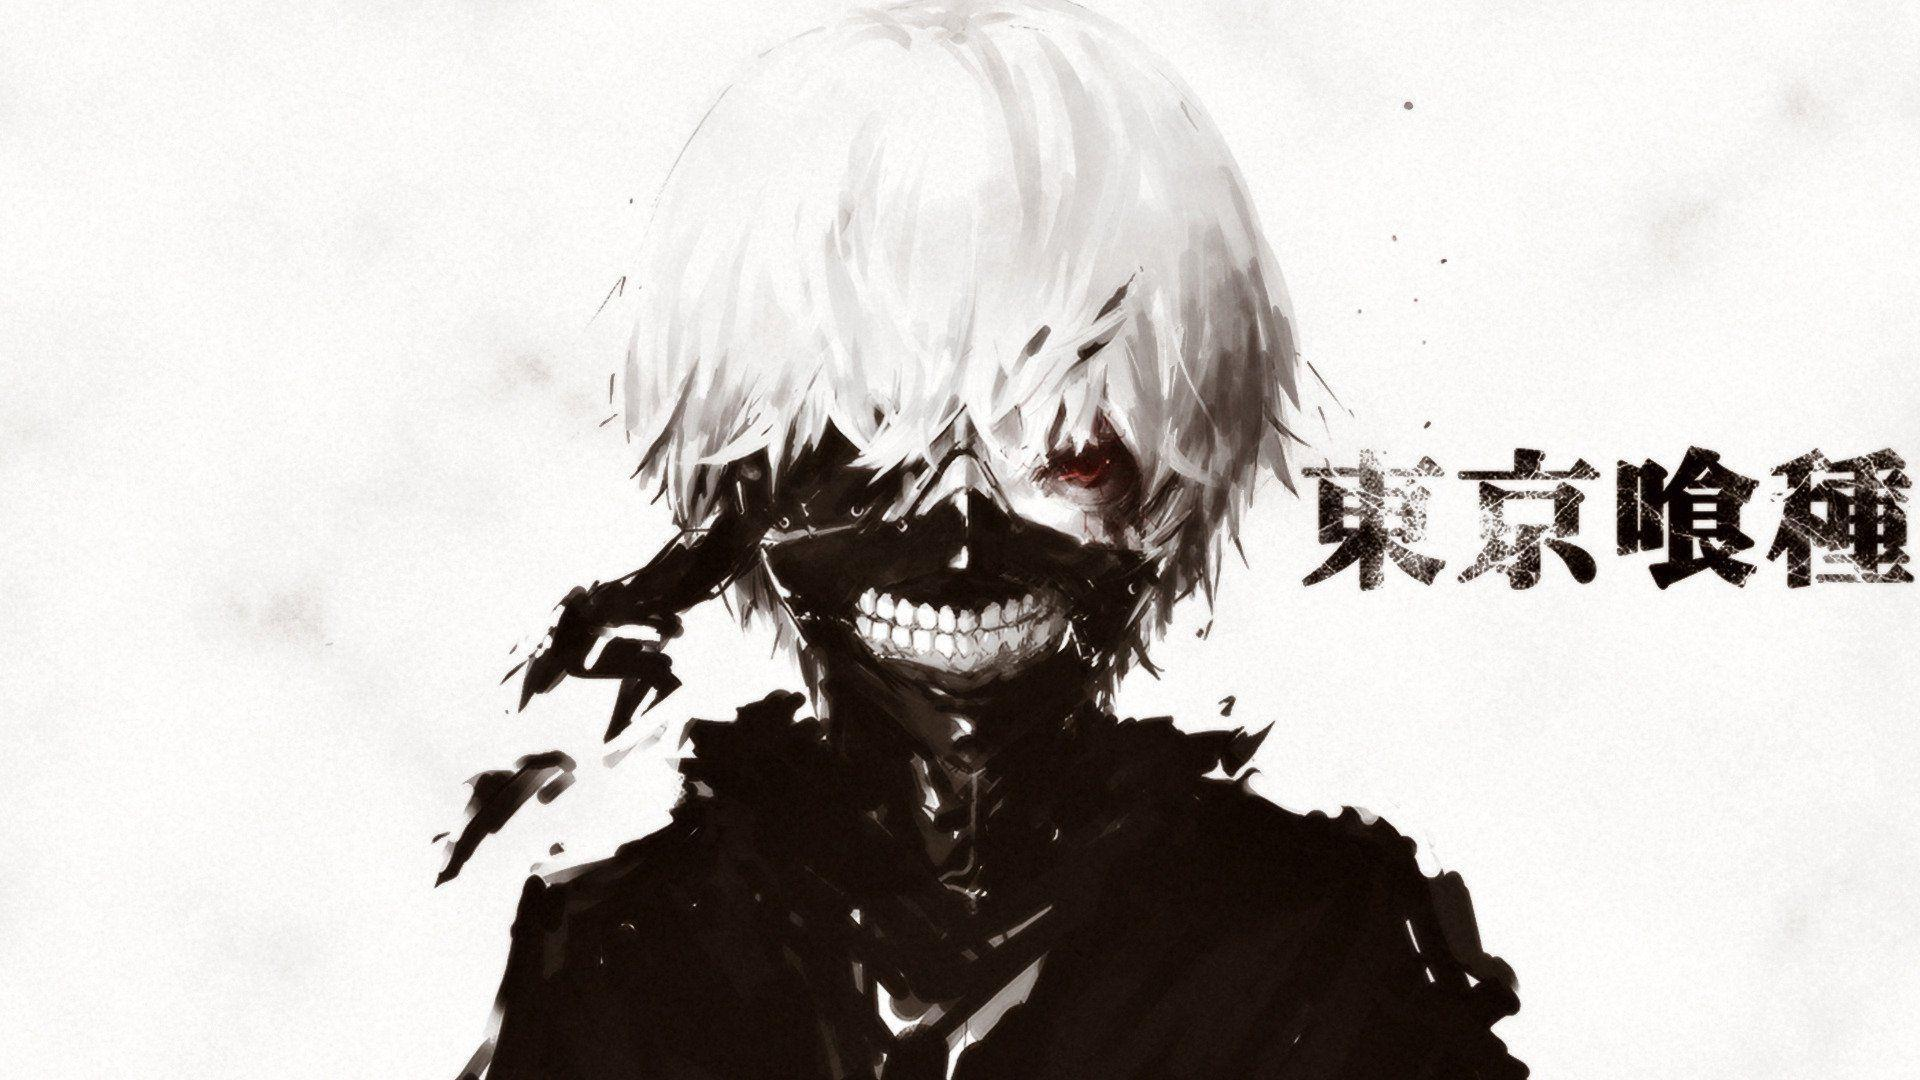 Simple Wallpaper High Quality Tokyo Ghoul - wp2107881  Best Photo Reference_274025.jpg